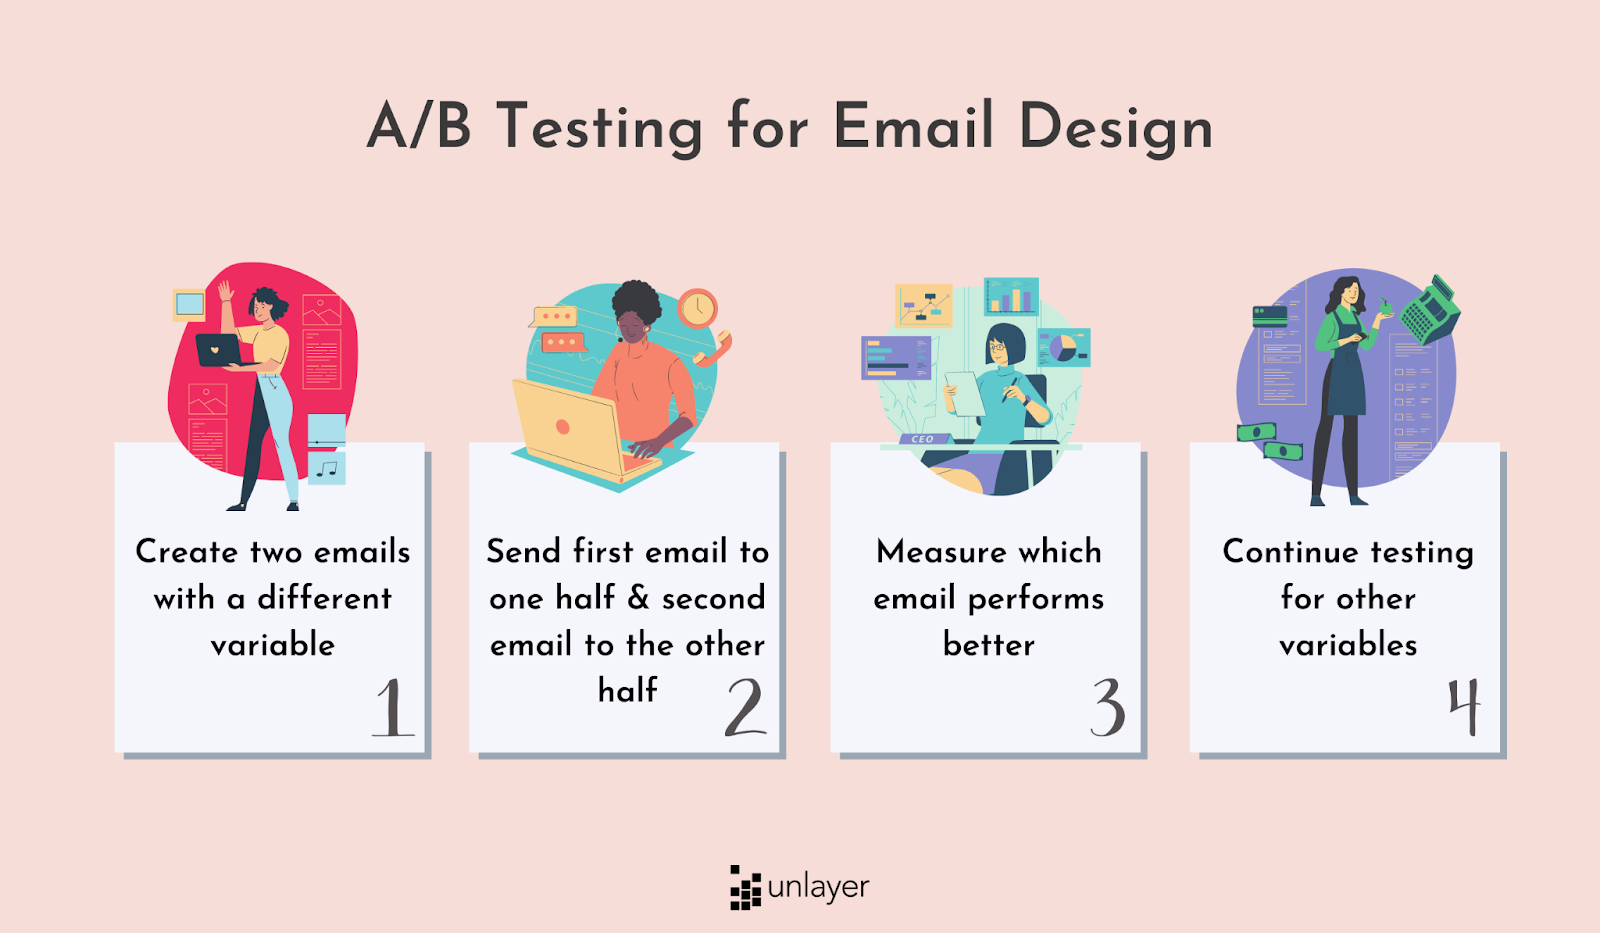 A/B testing in email design